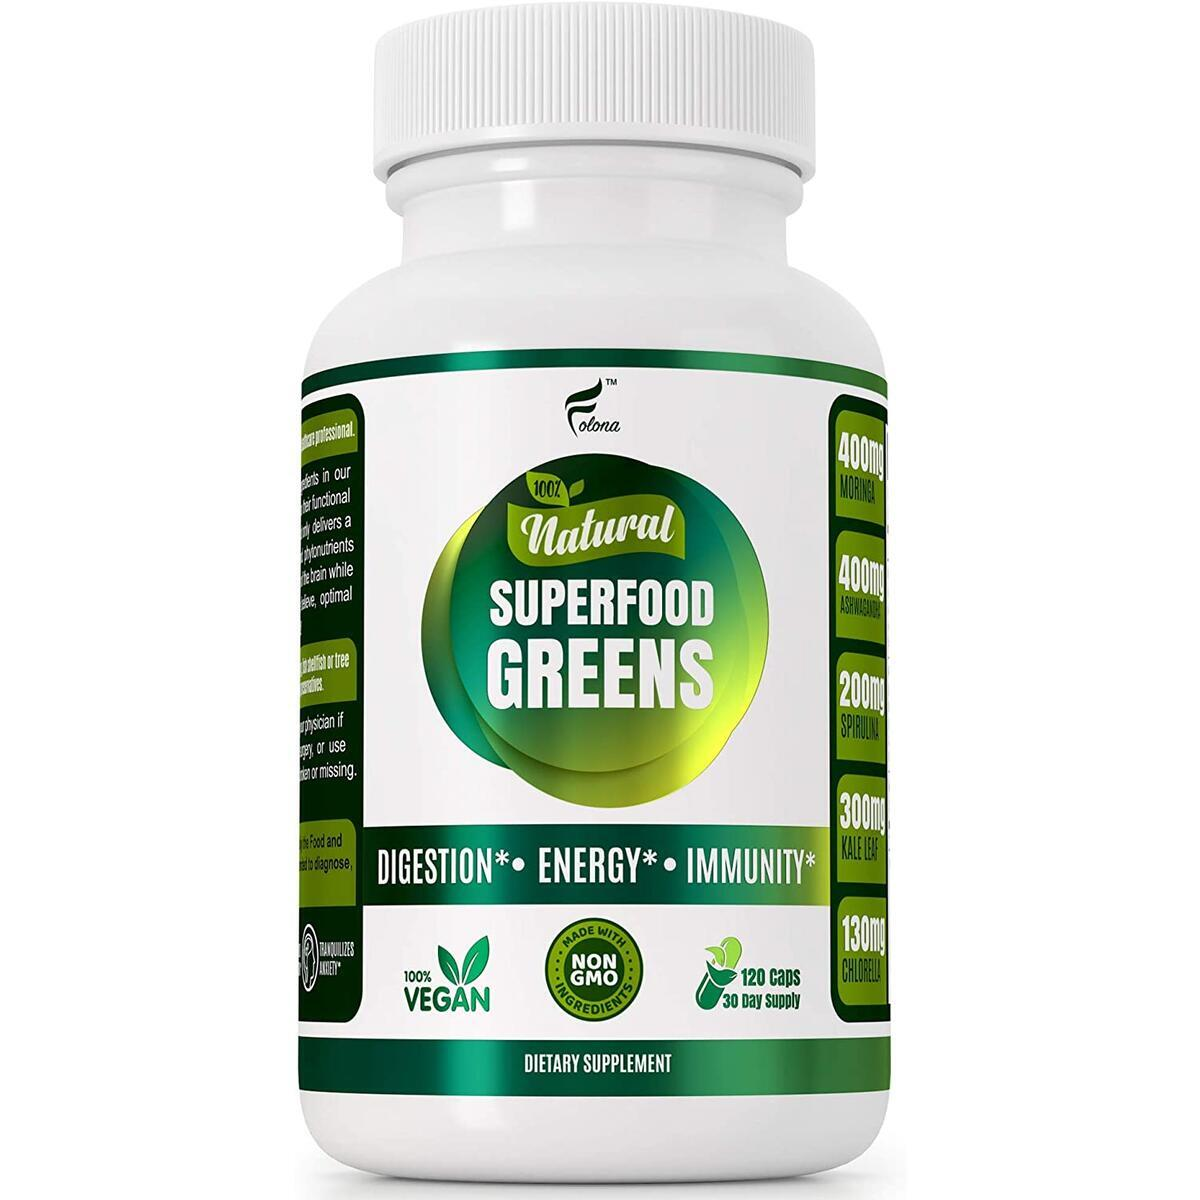 Organic Super Greens Vegan Capsules - Immune Support with All Natural Whole Food Nutrients - Improve Digestion, Boost Energy Detox Pills with Spirulina, Kale, Moringa, Ashwagandha, Turmeric, Chlorella